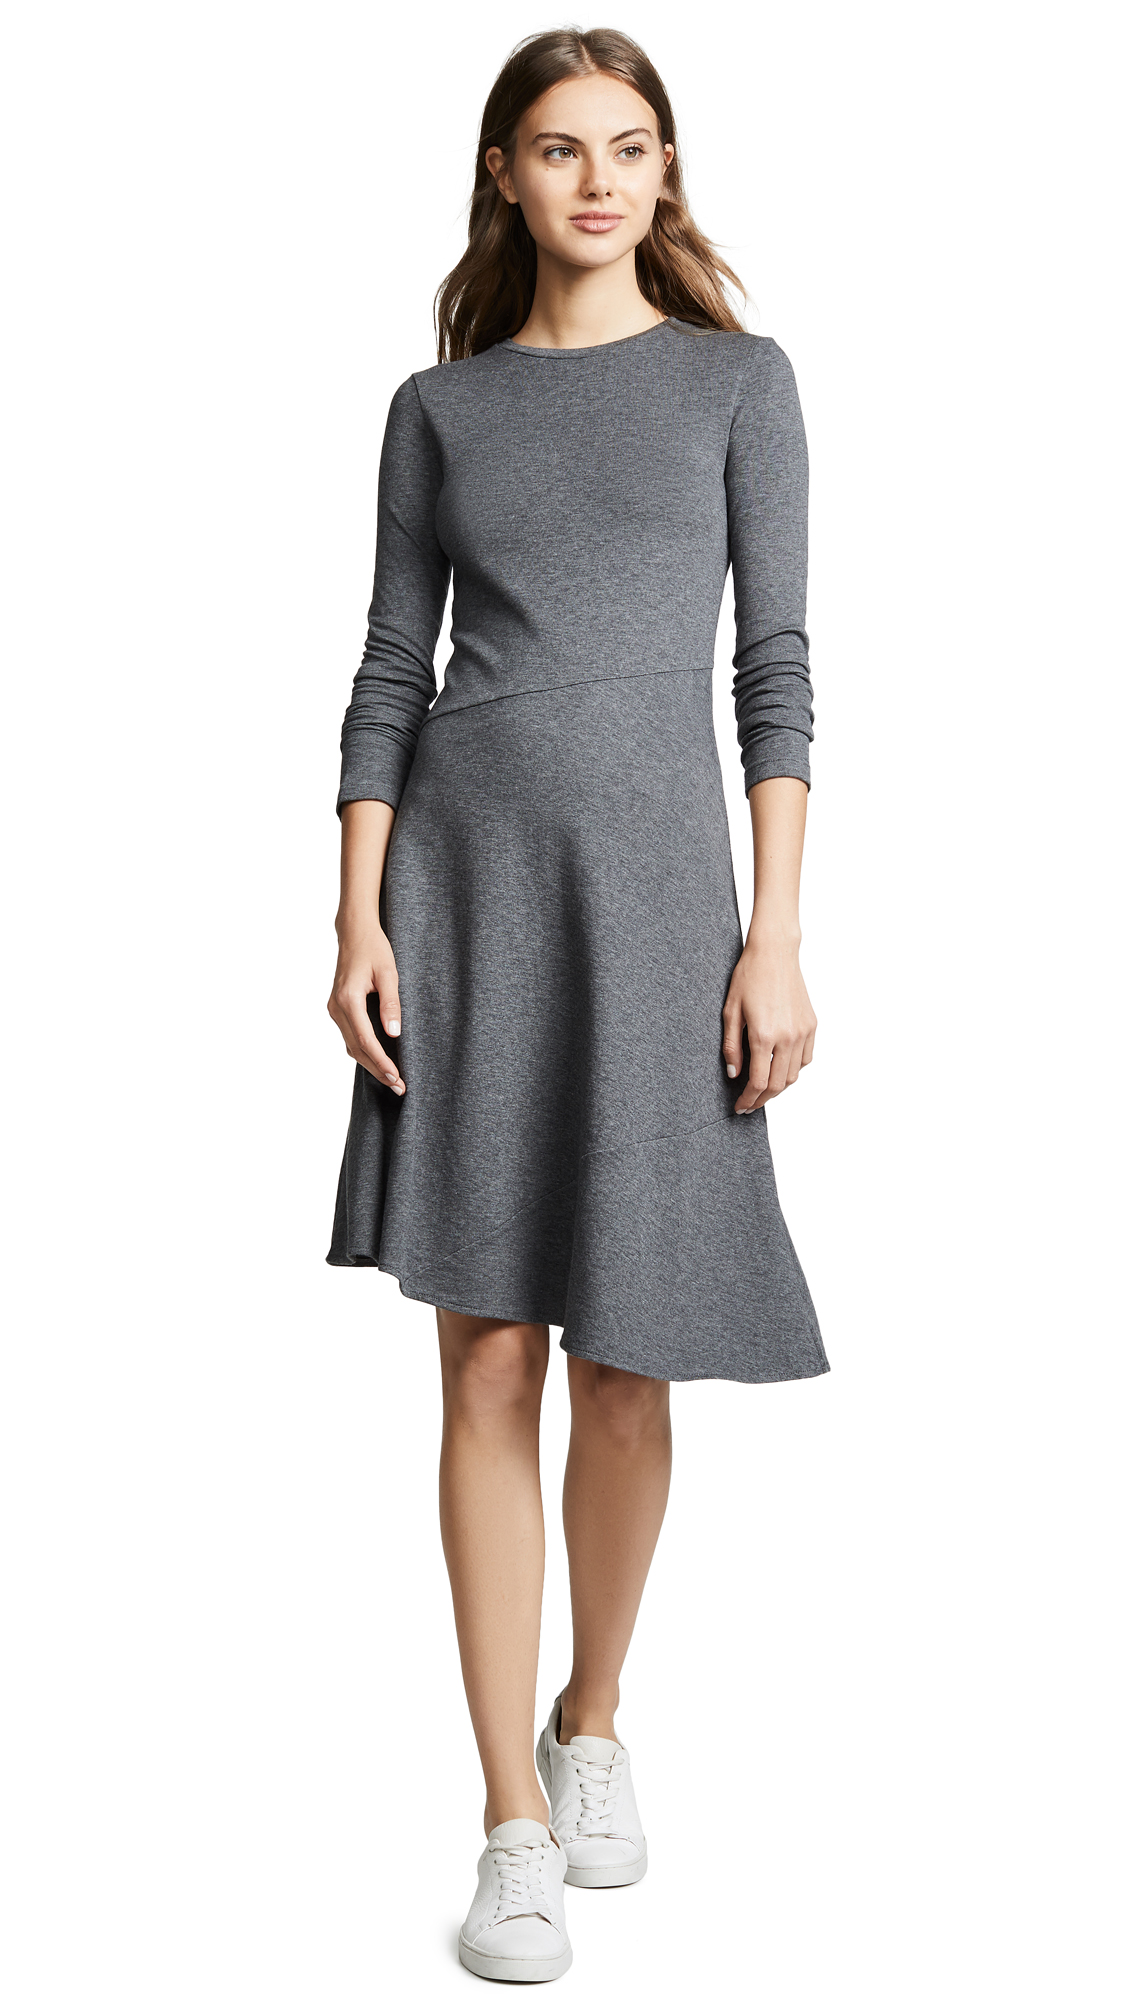 Vince Asymmetric Midi Dress In Heather Charcoal